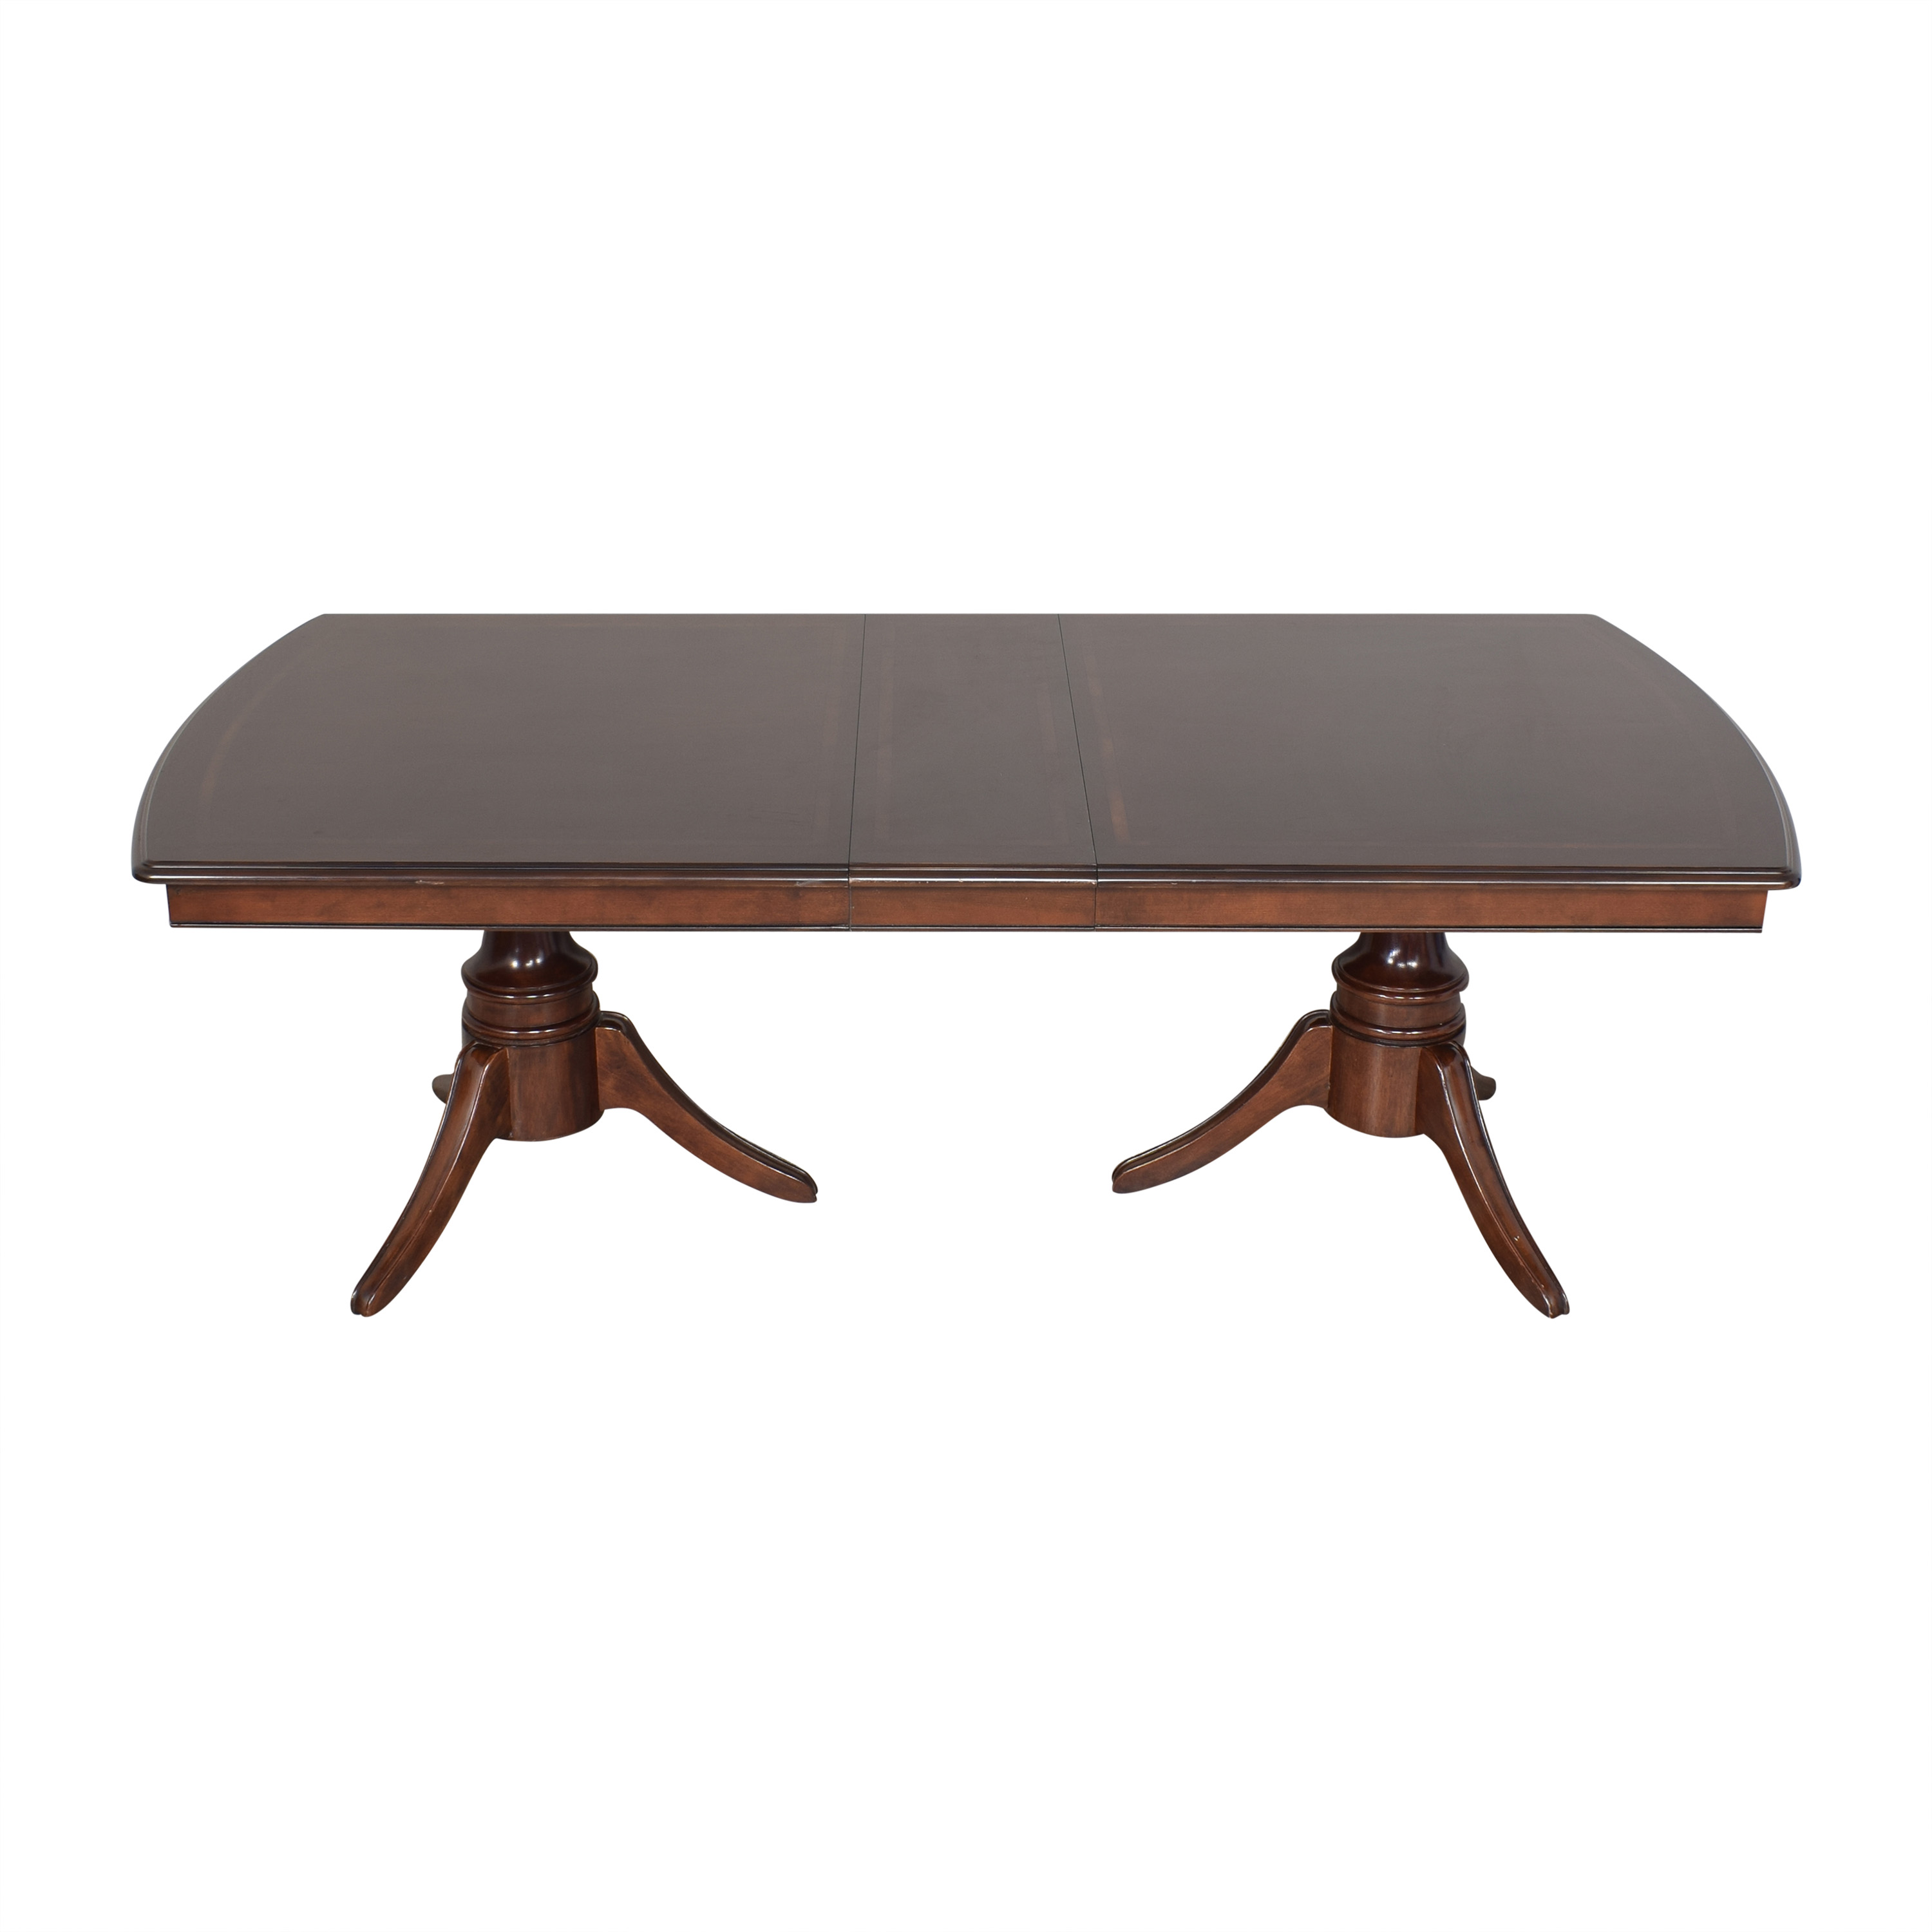 Raymour & Flanigan Raymour & Flanigan Extendable Dining Table ct